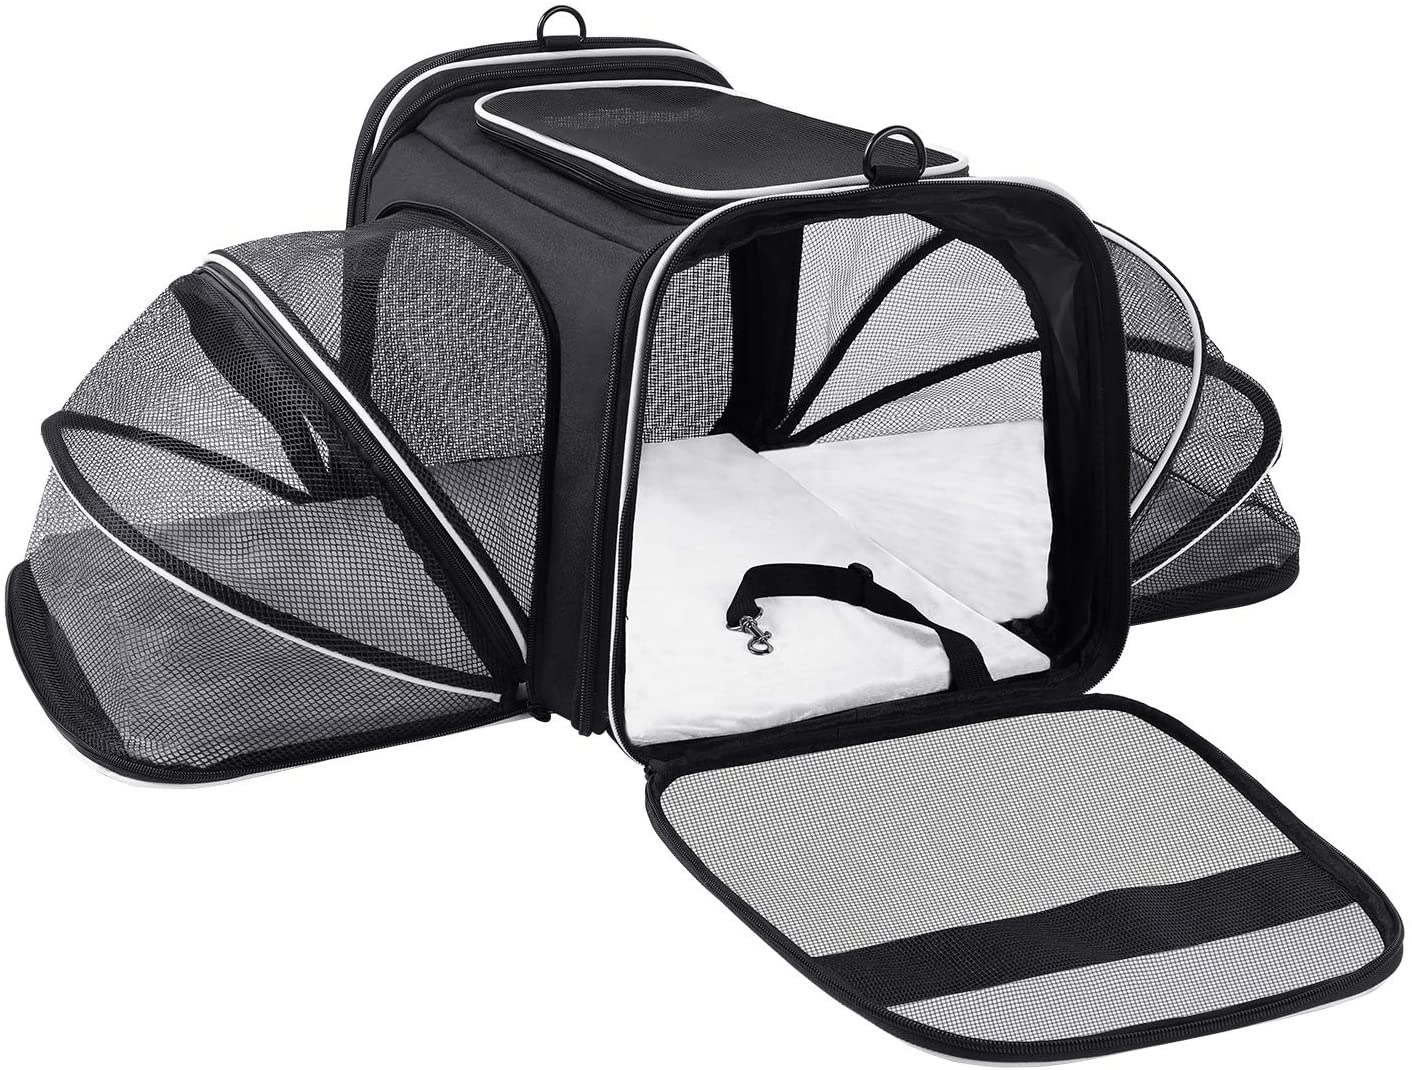 MASKEYON Airline Approved,Large 2 Sides Expandable Dog Carrier,4 Door,3 Zippered Pockets,3 Fleece Pads,Shoulder Strap,Collapsible Soft Sided Pet Travel Carrier Bag Kennel for Cats Kitty and Small Dogs